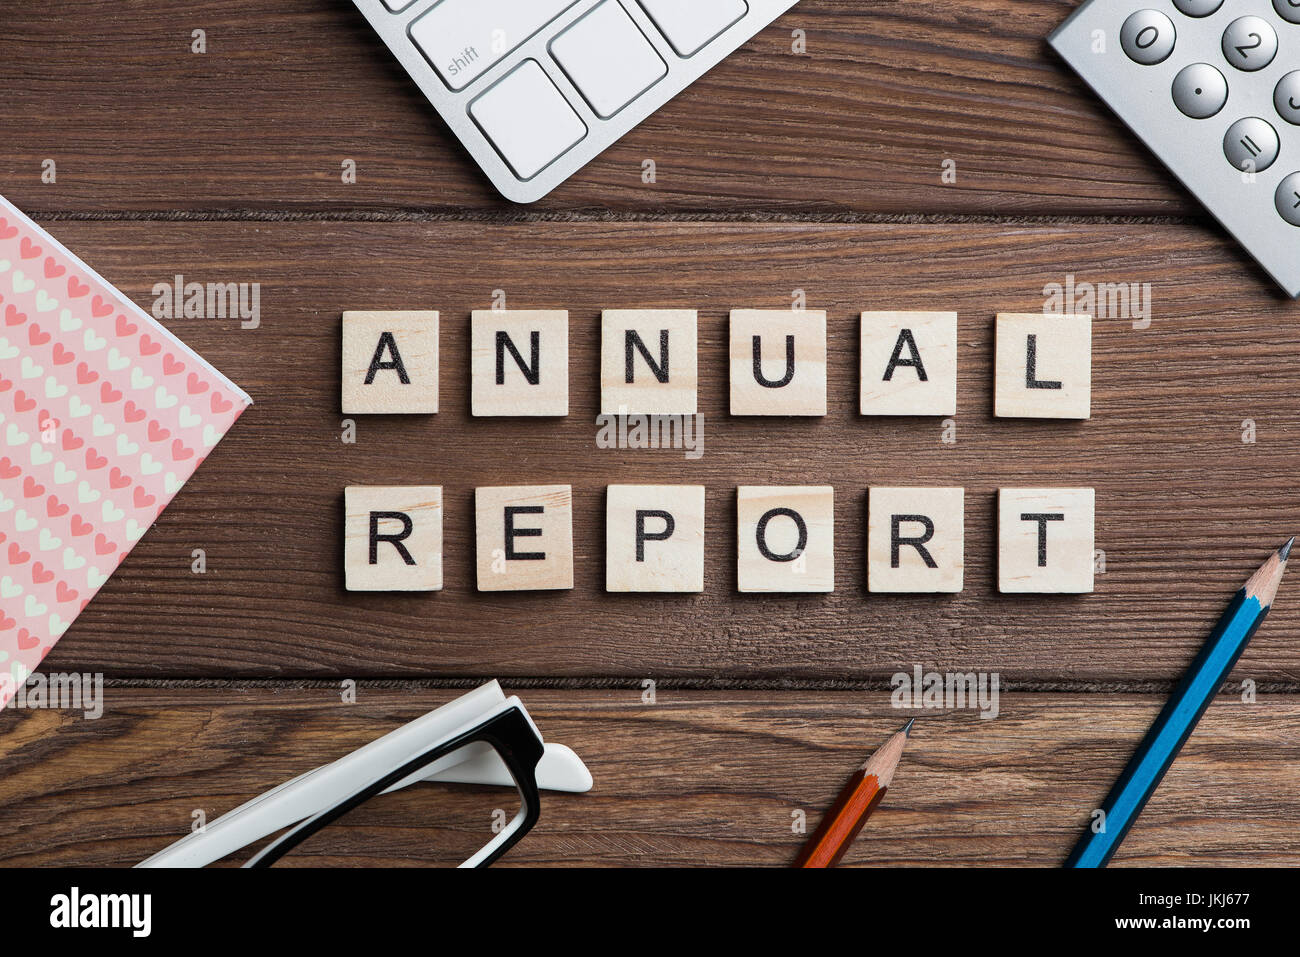 annual budget plan stock photos annual budget plan stock images